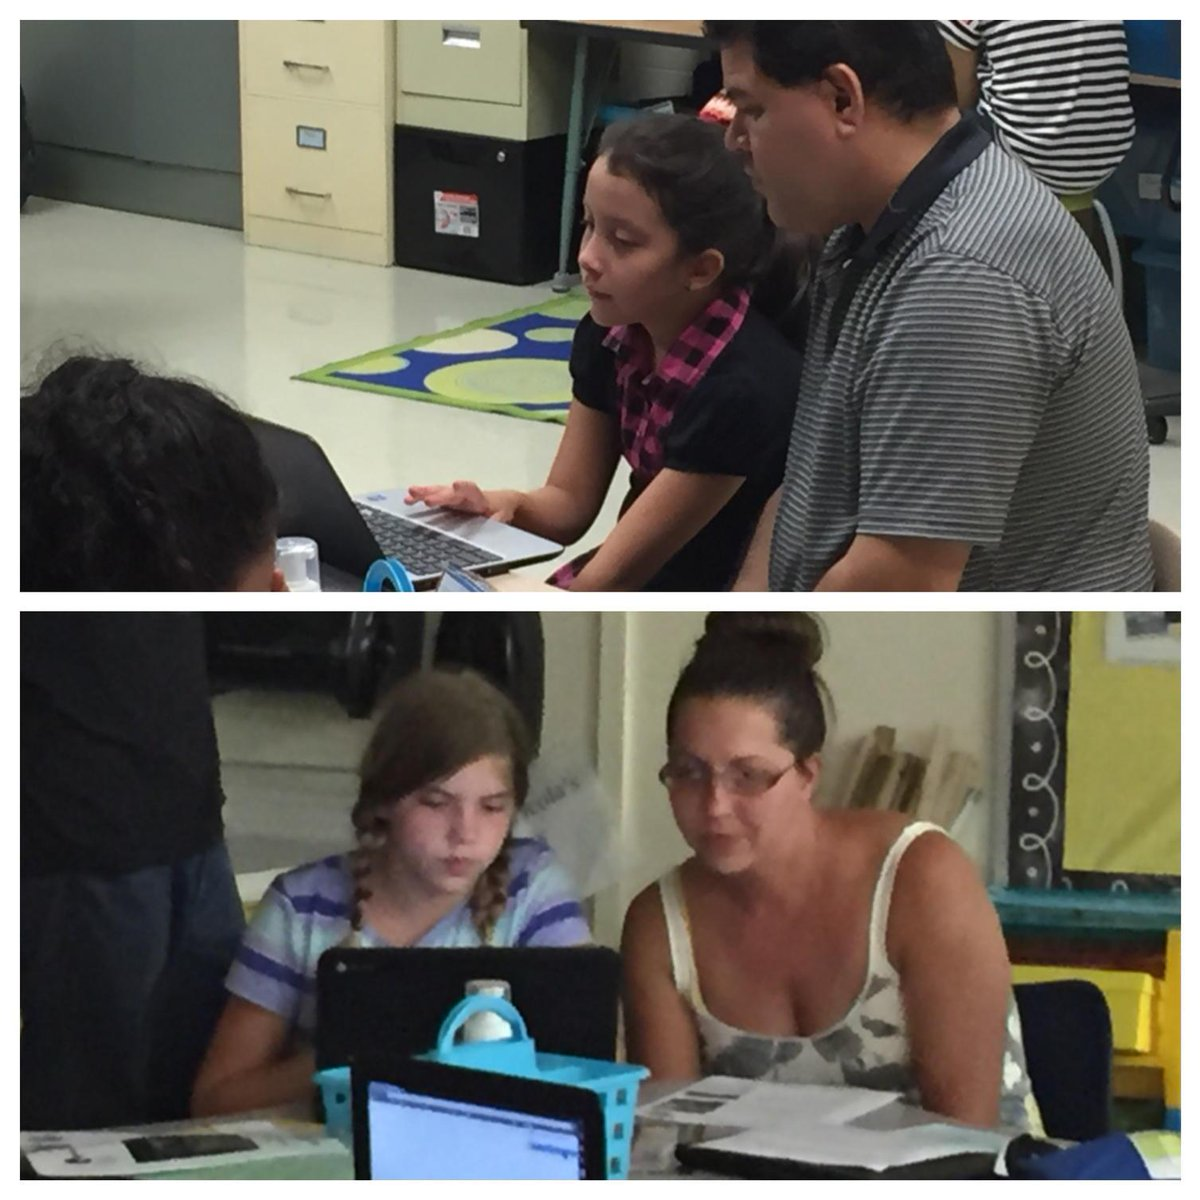 Enjoyed seeing 5th grade students involved in explaining to parents how they'll use #Chromebooks this year! #wdsd7 http://t.co/EAeUN9g9Zi